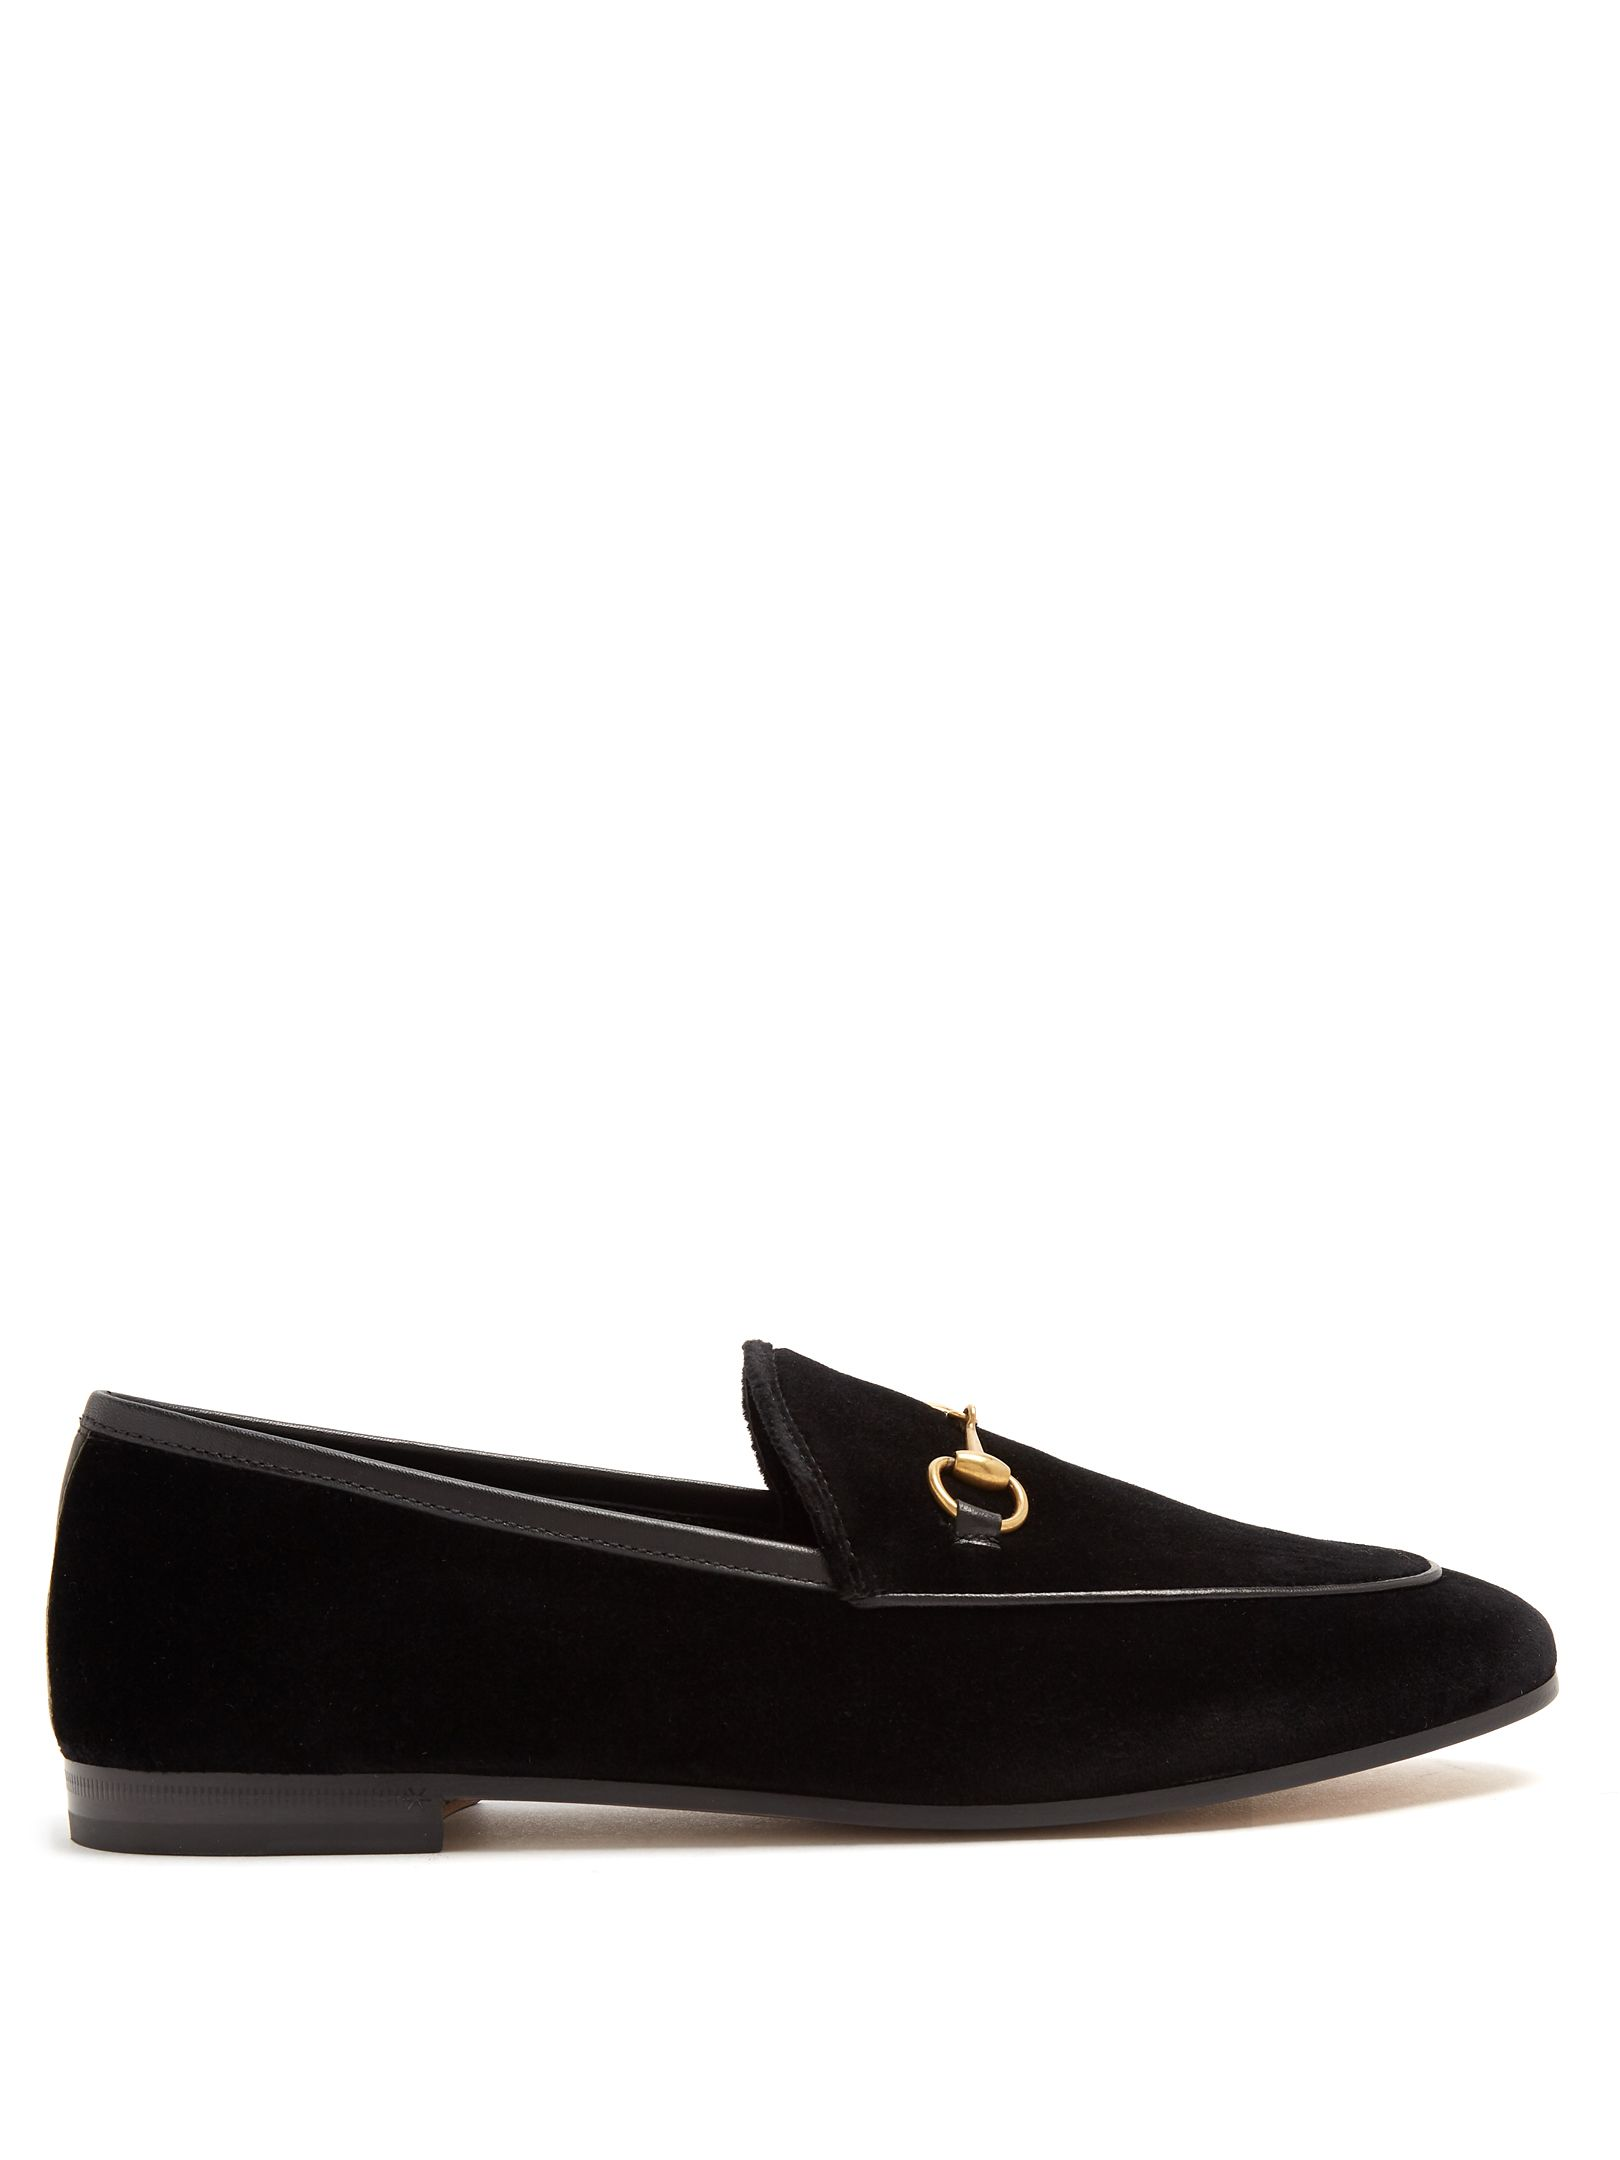 671a5f3365b Click here to buy Gucci Jordaan velvet loafers at MATCHESFASHION.COM ...